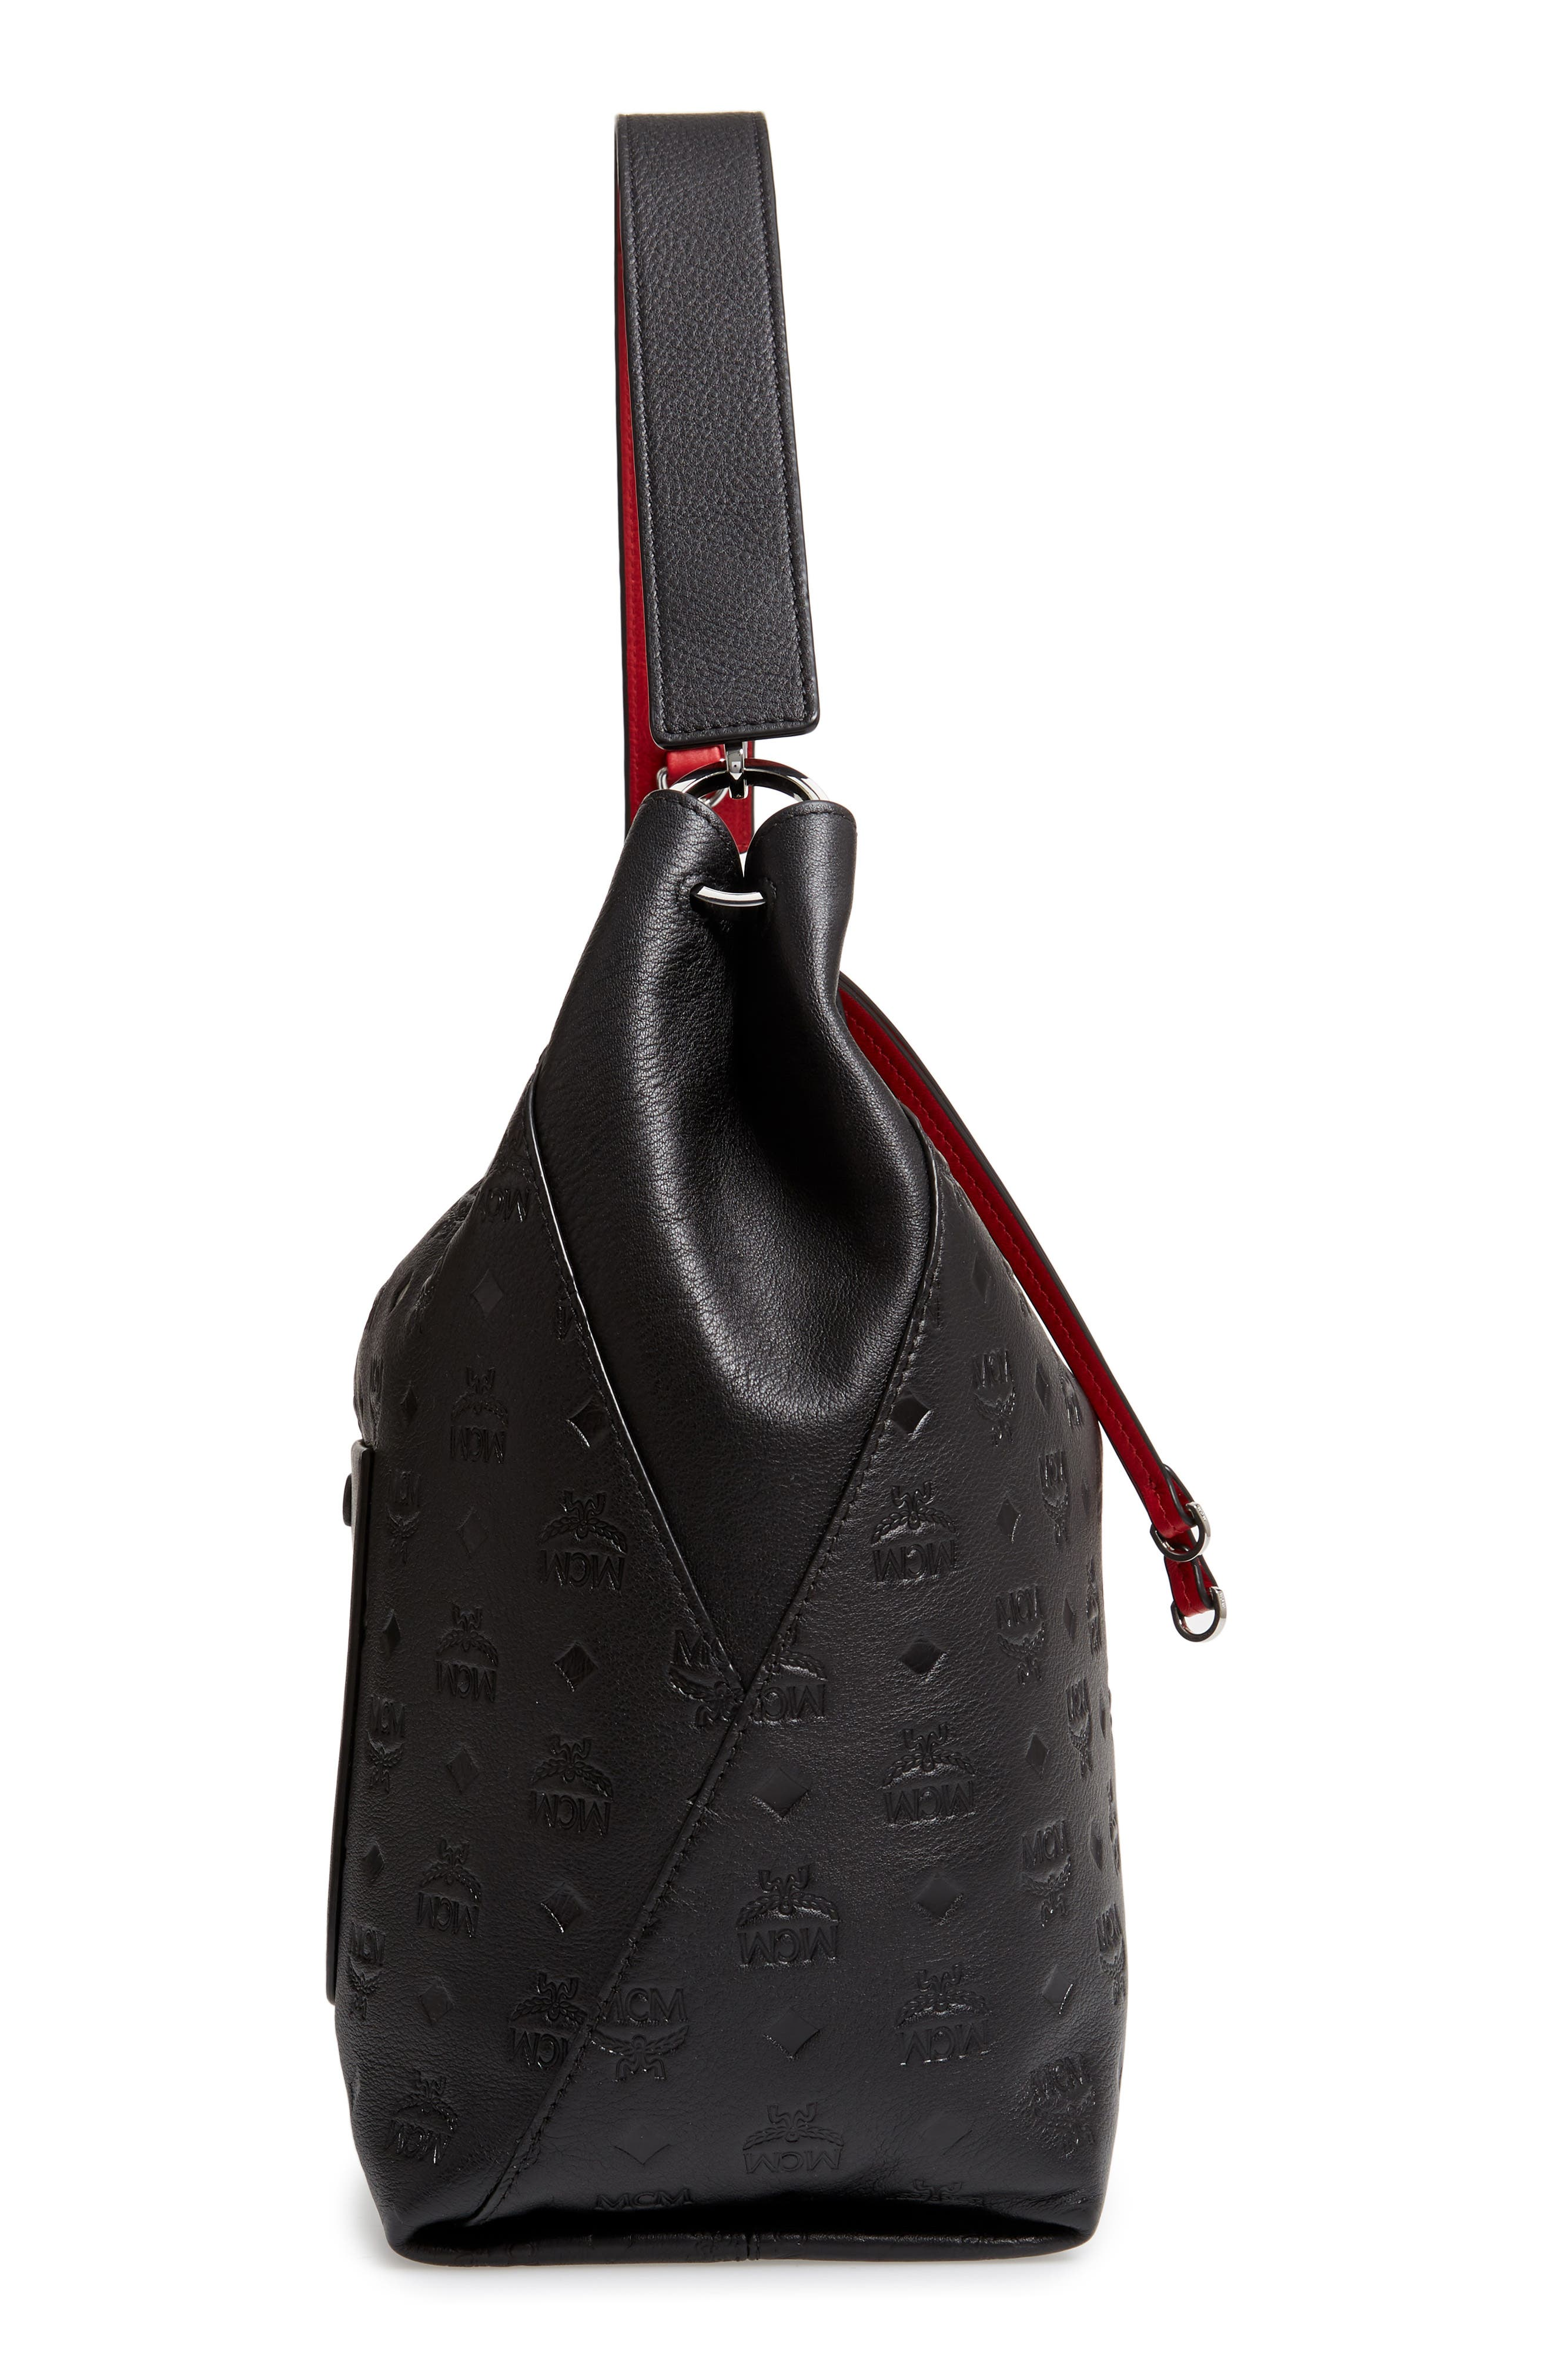 Klara Monogrammed Leather Hobo Bag,                             Alternate thumbnail 6, color,                             001